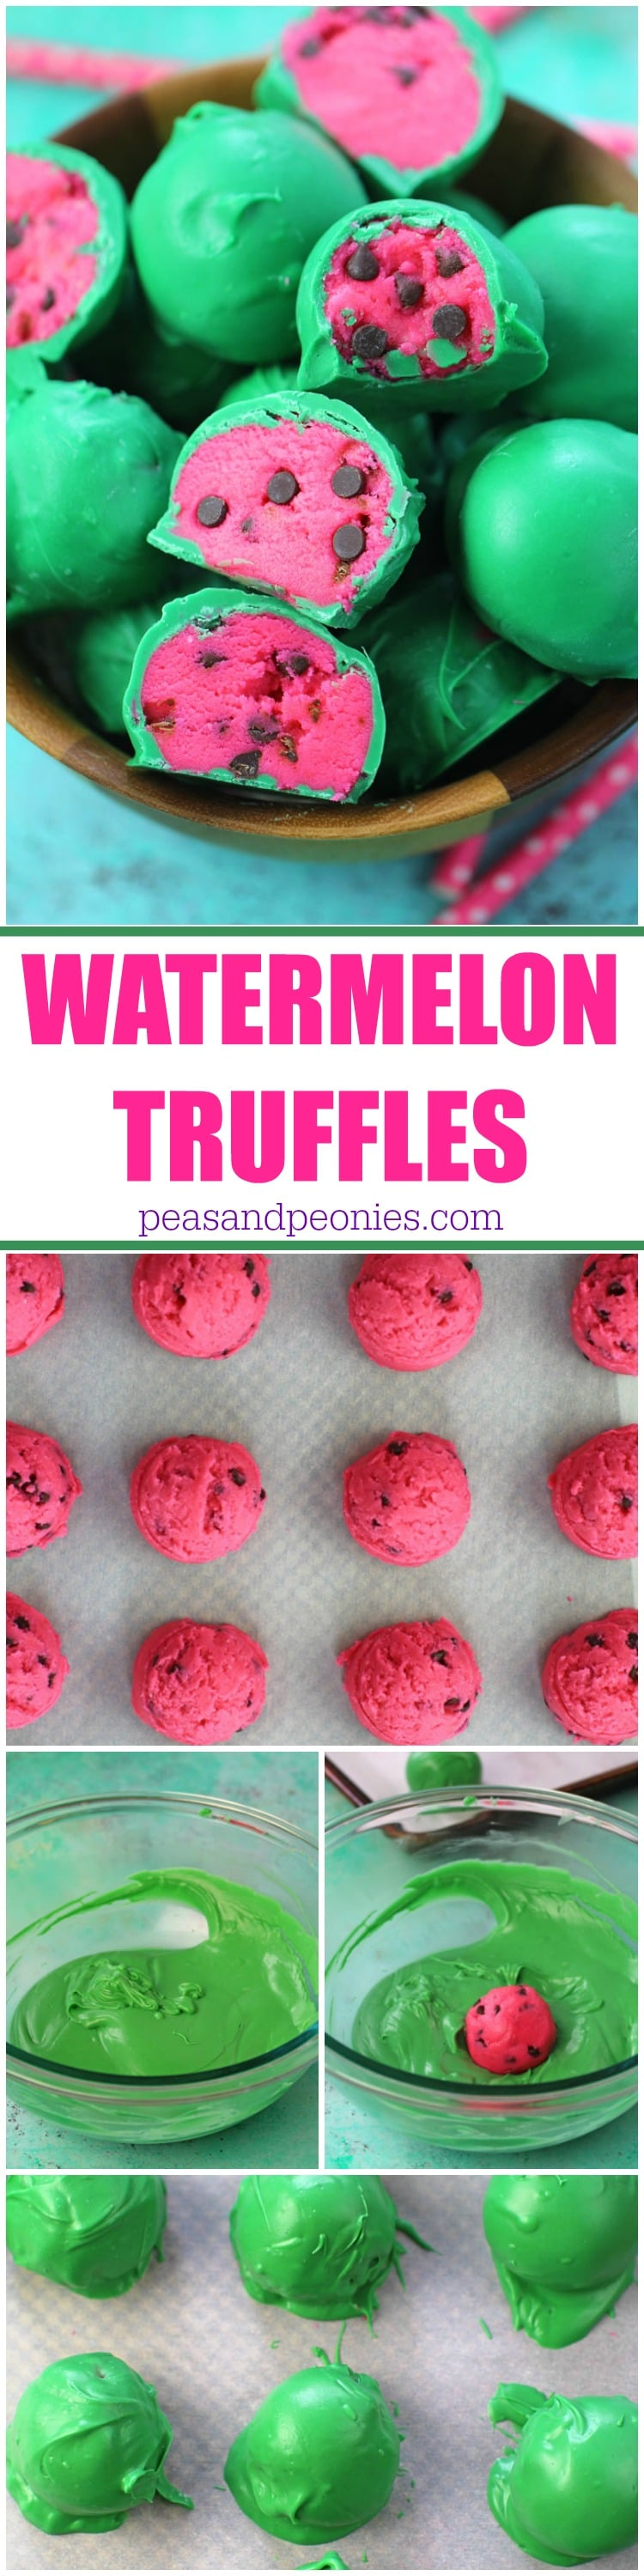 No Bake Watermelon Truffles are a fun, tasty and colorful summer treat. Easy to make, with just a few ingredients, these are perfect to brighten your day.